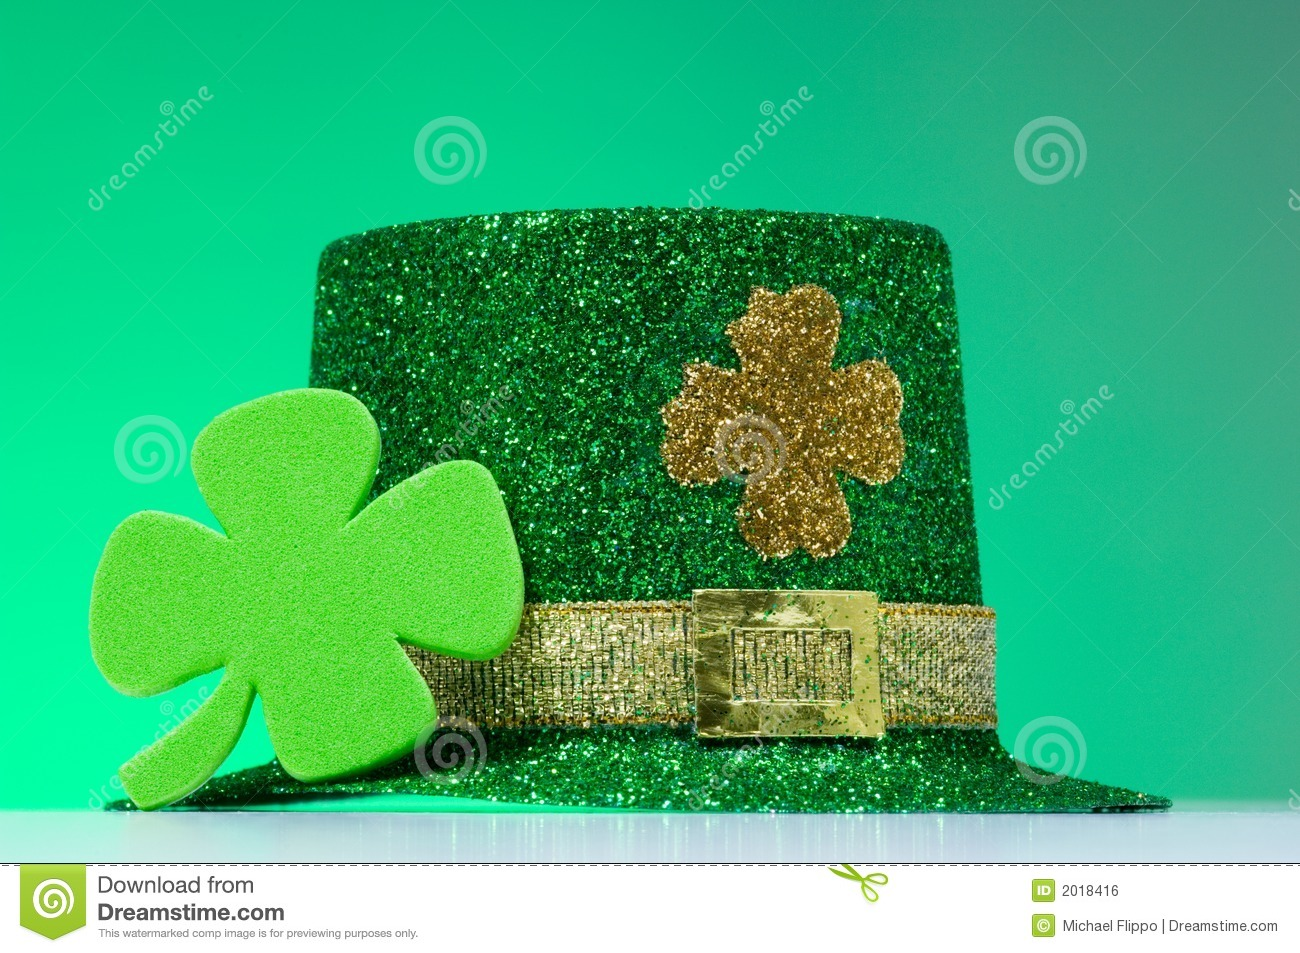 Irish st patrick 39 s day decorations royalty free stock for Decoration saint patrick